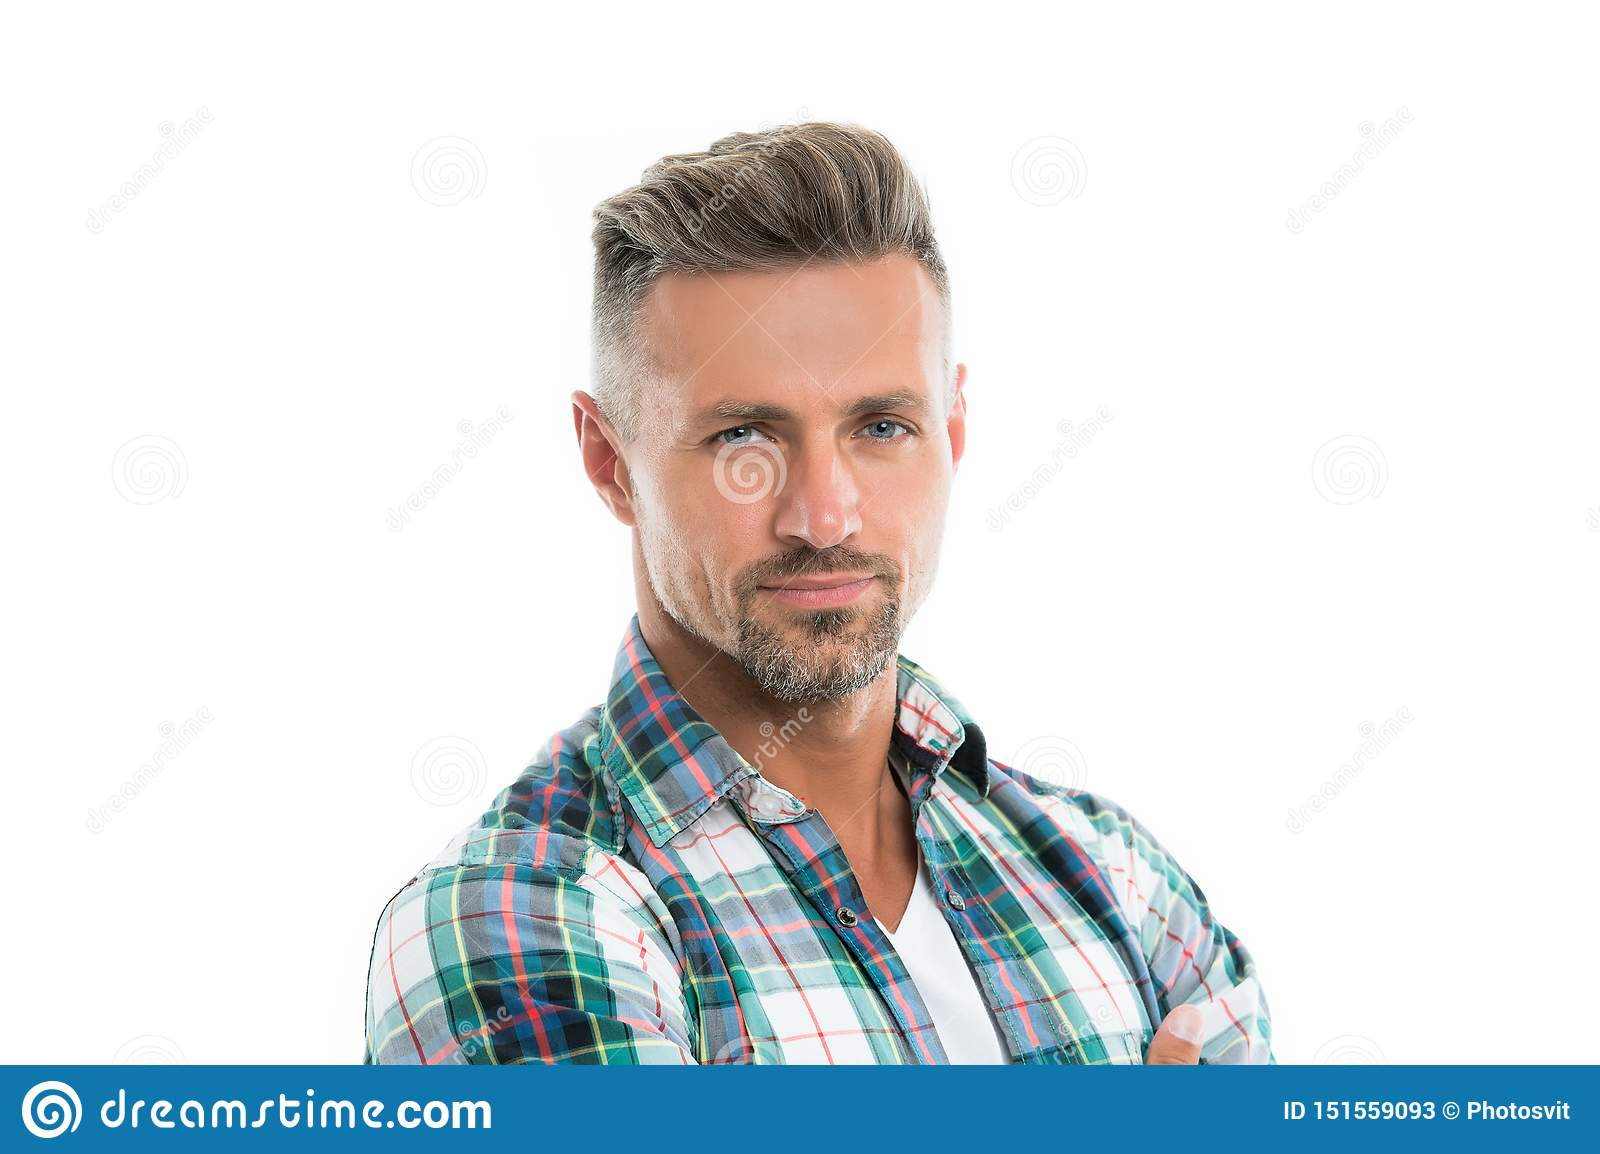 Male natural beauty. Deal with gray roots. Man attractive well groomed facial hair. Barber shop concept. Grizzle hair